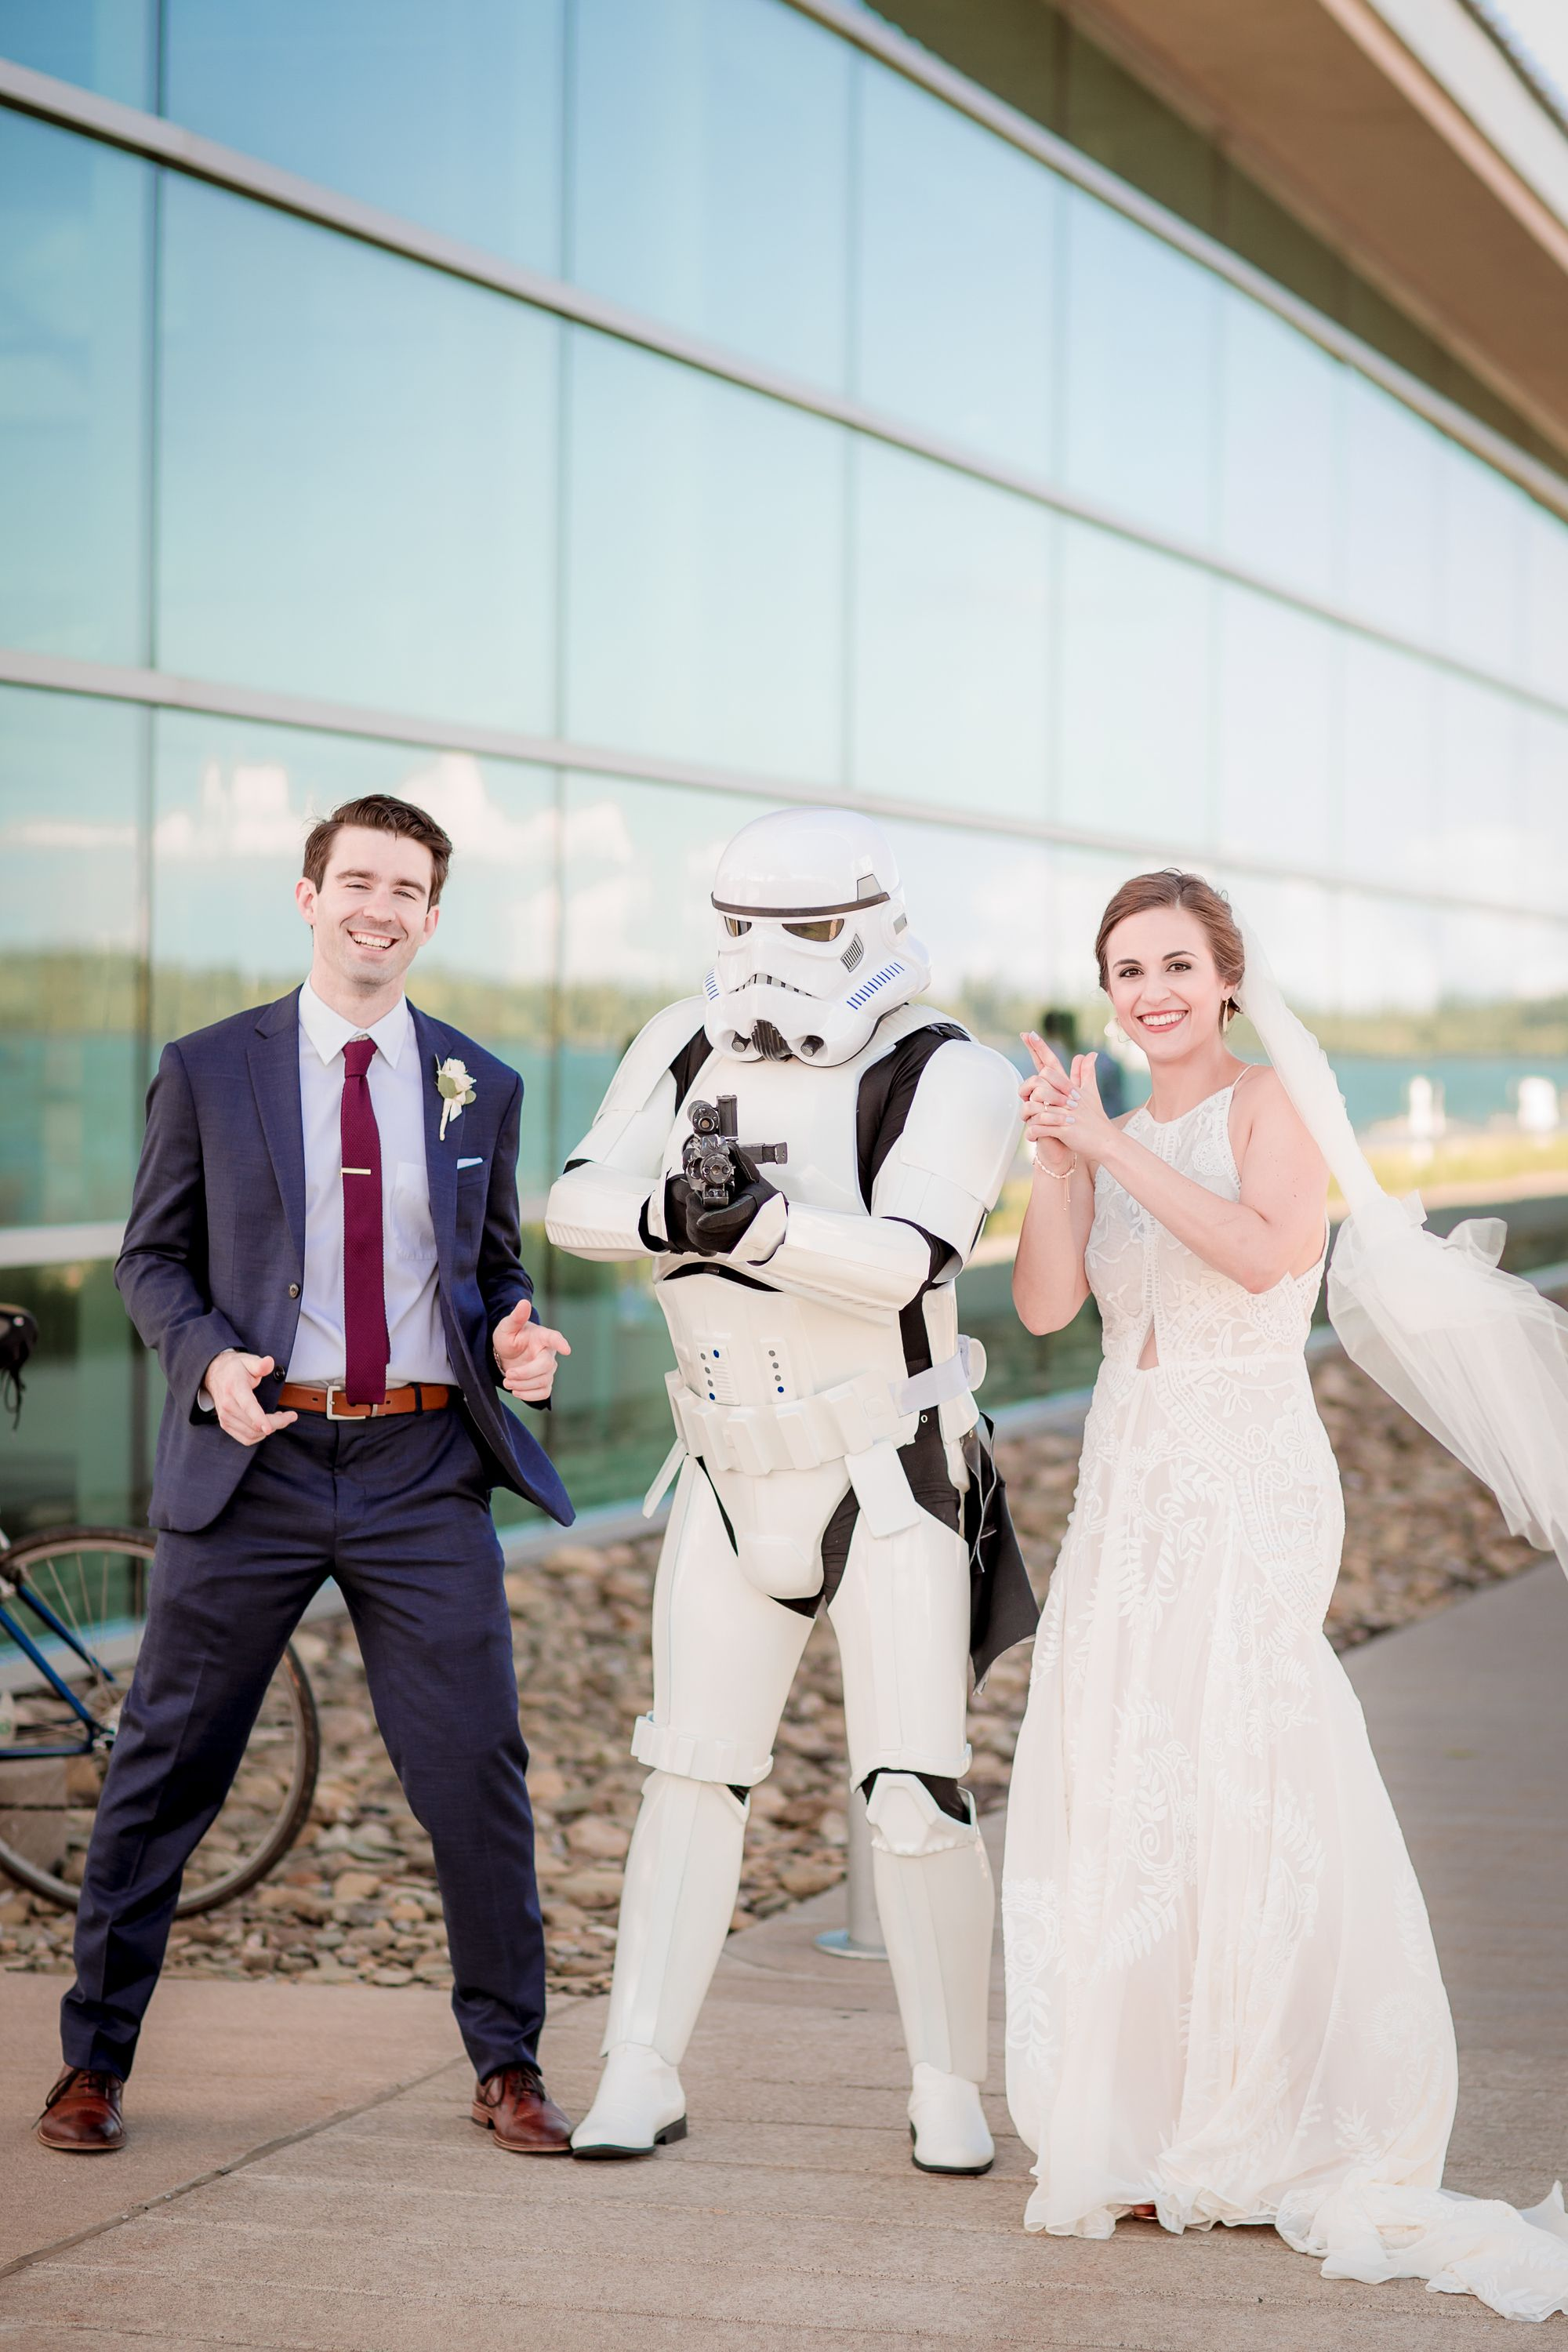 Wedding portraits are always better with a little personality in them! Who doesn't love a #starwars character?! #eriepaphotographer #eriepawedding #eriepaengagment #eriepafamilyphoto #eriepaweddingphotographer #solovelysofree #radlovestories #adventurouspiclife #epiclovepiclif #togetherjournal #wildhairandhappyhair #embracepresets #instawedding #huffpostido #calledtobecreative #friendsinmyfeed #postthepeople #thousandwords #photographysouls #pursuitofportraits #makeportrait